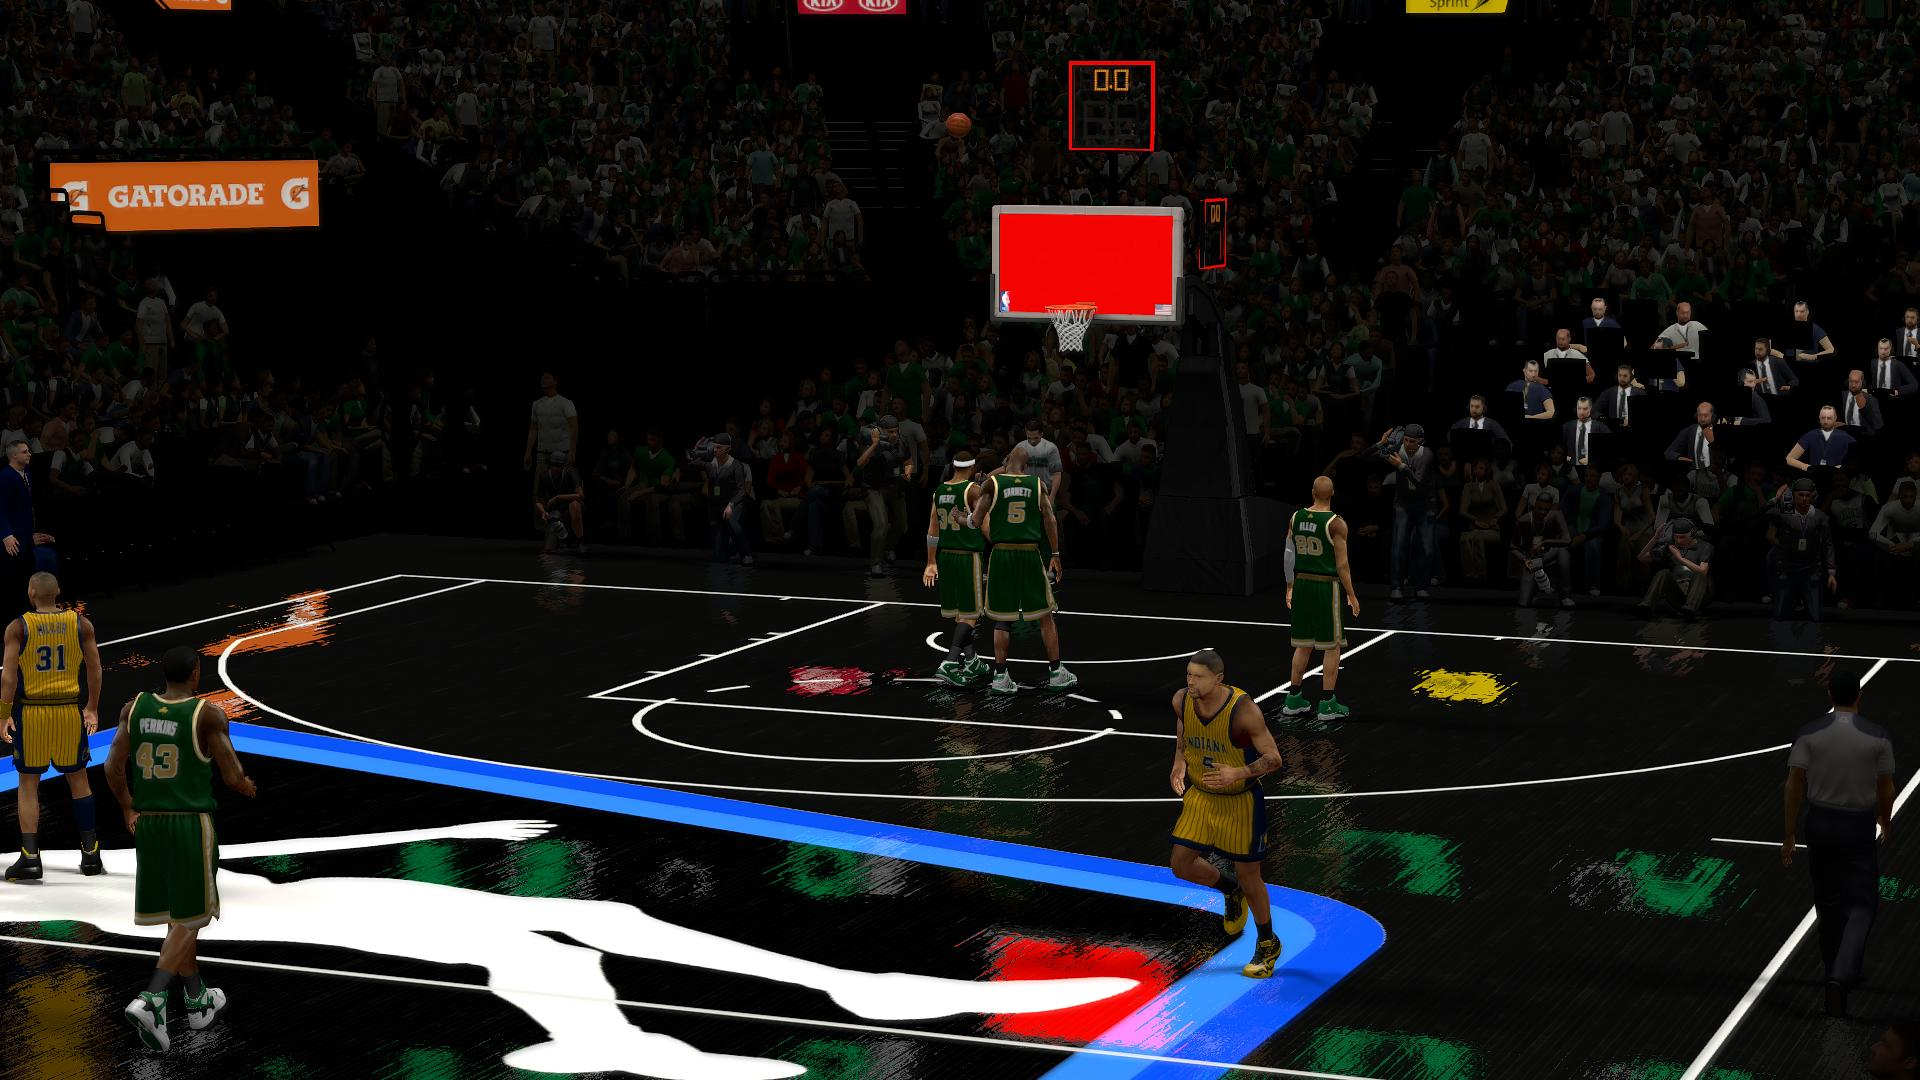 NBA Jam He's On Fire Mod NBA 2K14 PC